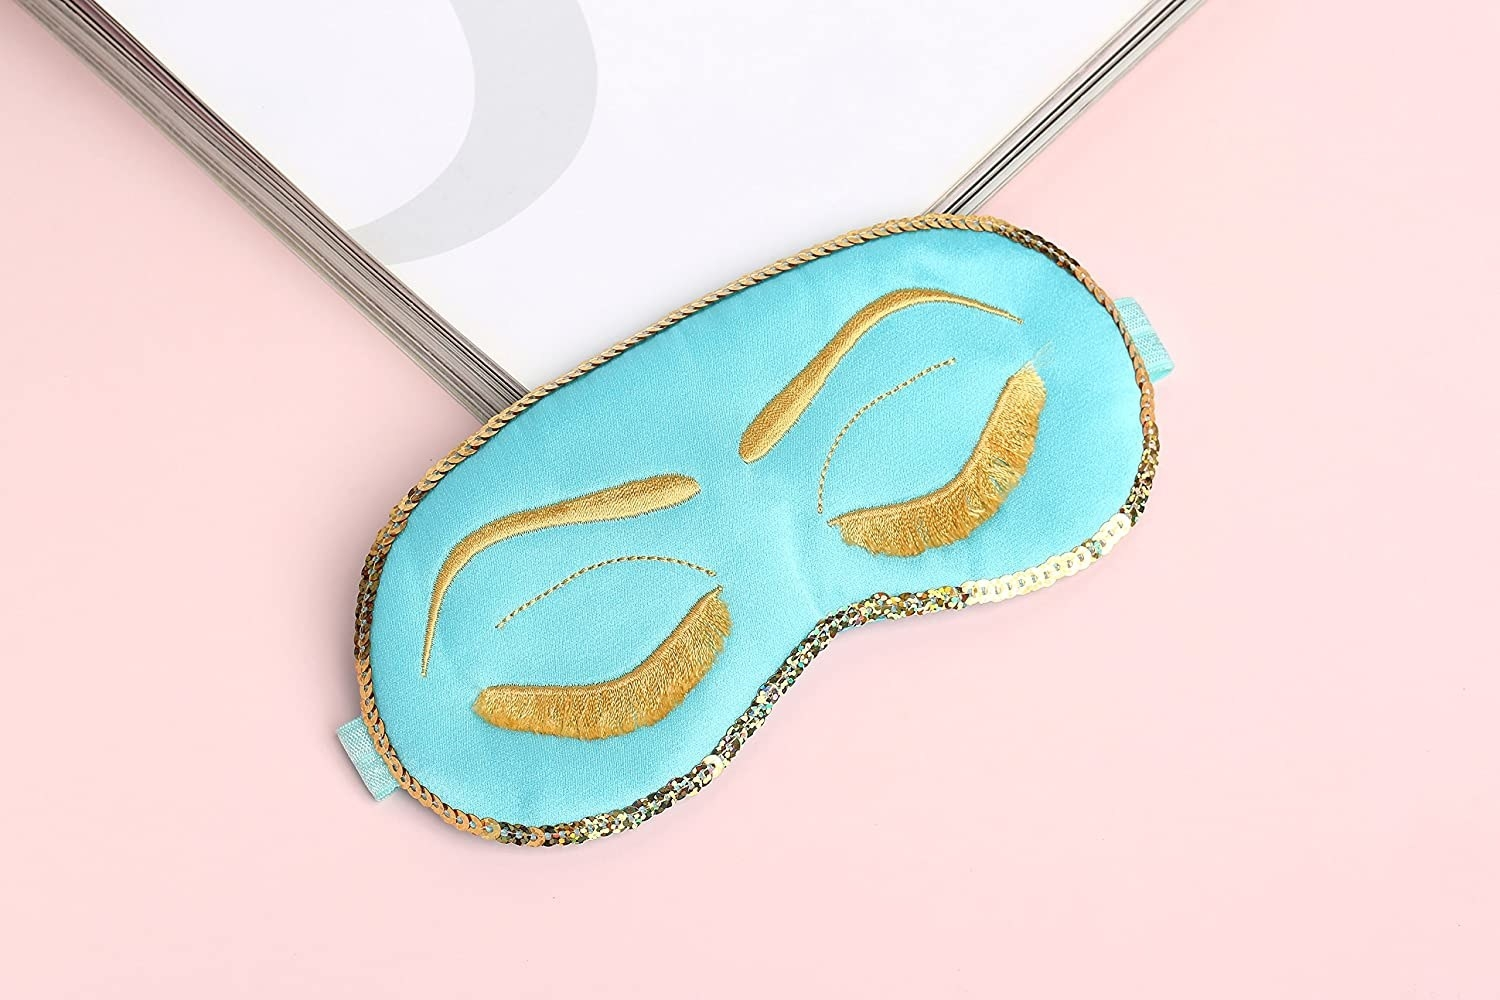 The aqua mask with gold sequin trim and gold embroidery to look like eyebrows and eyelashes